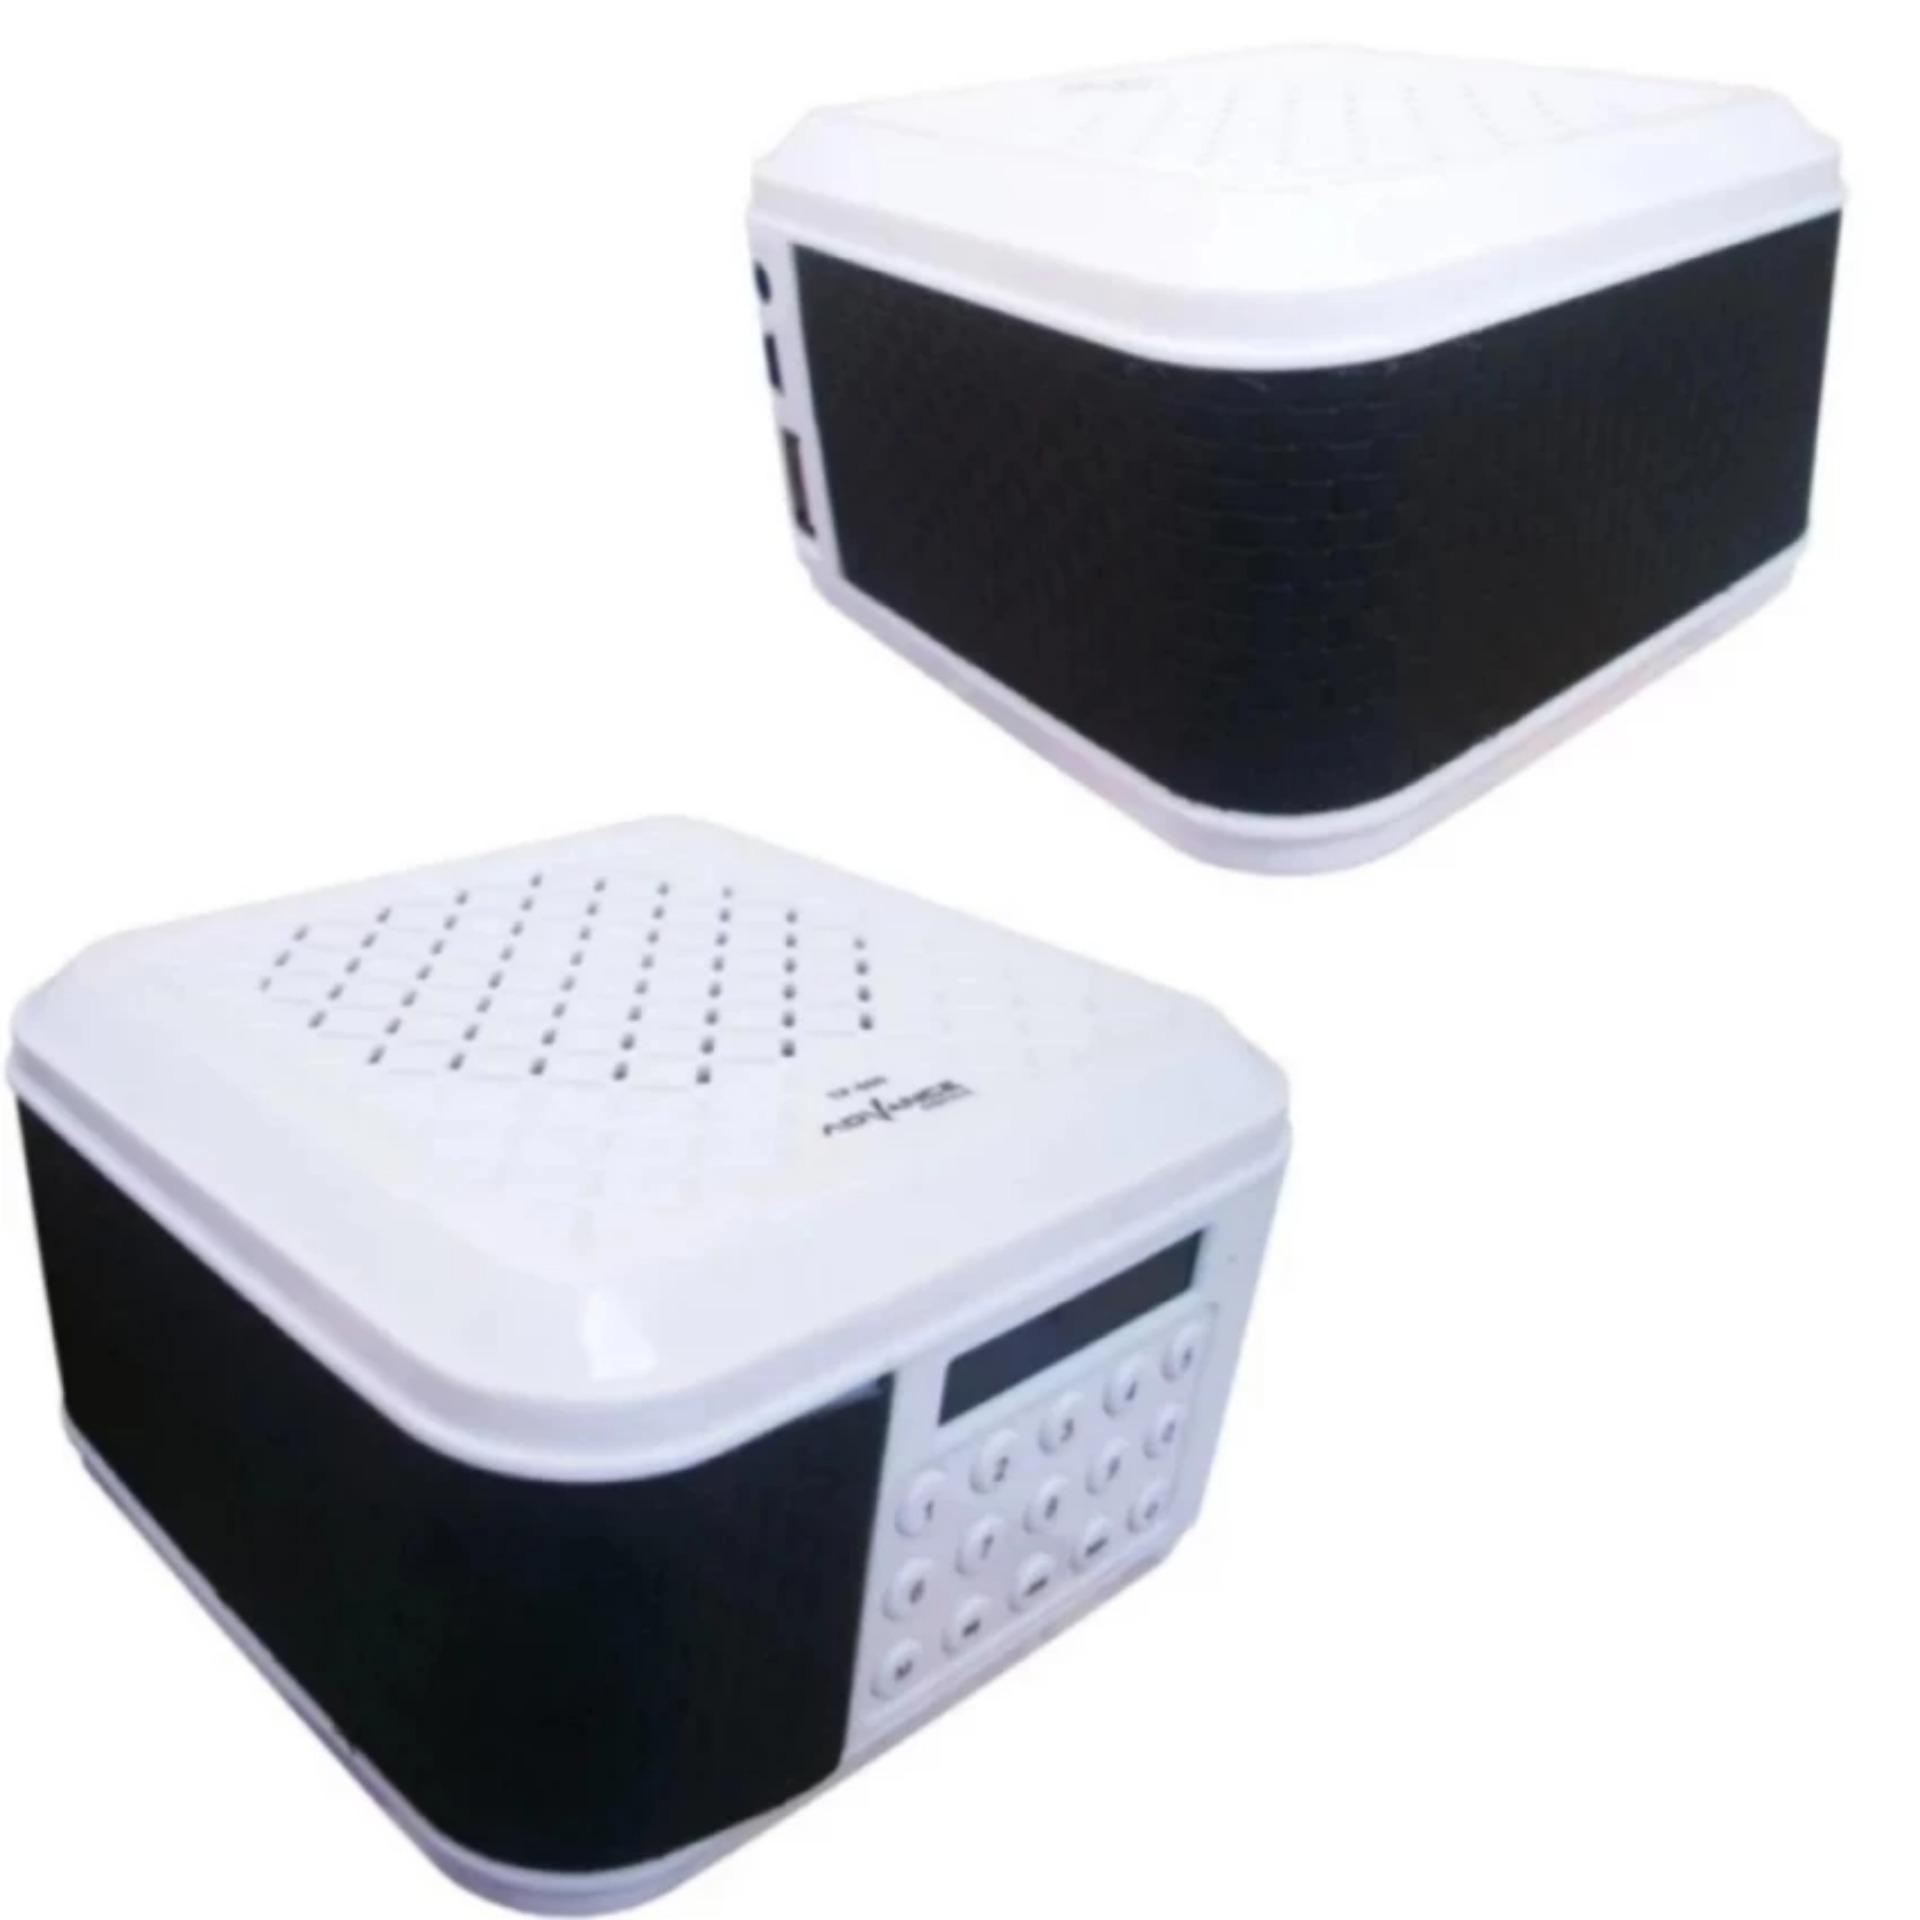 Ulasan Lengkap Speaker Portable Xtra Power Sound Advance Tp 600